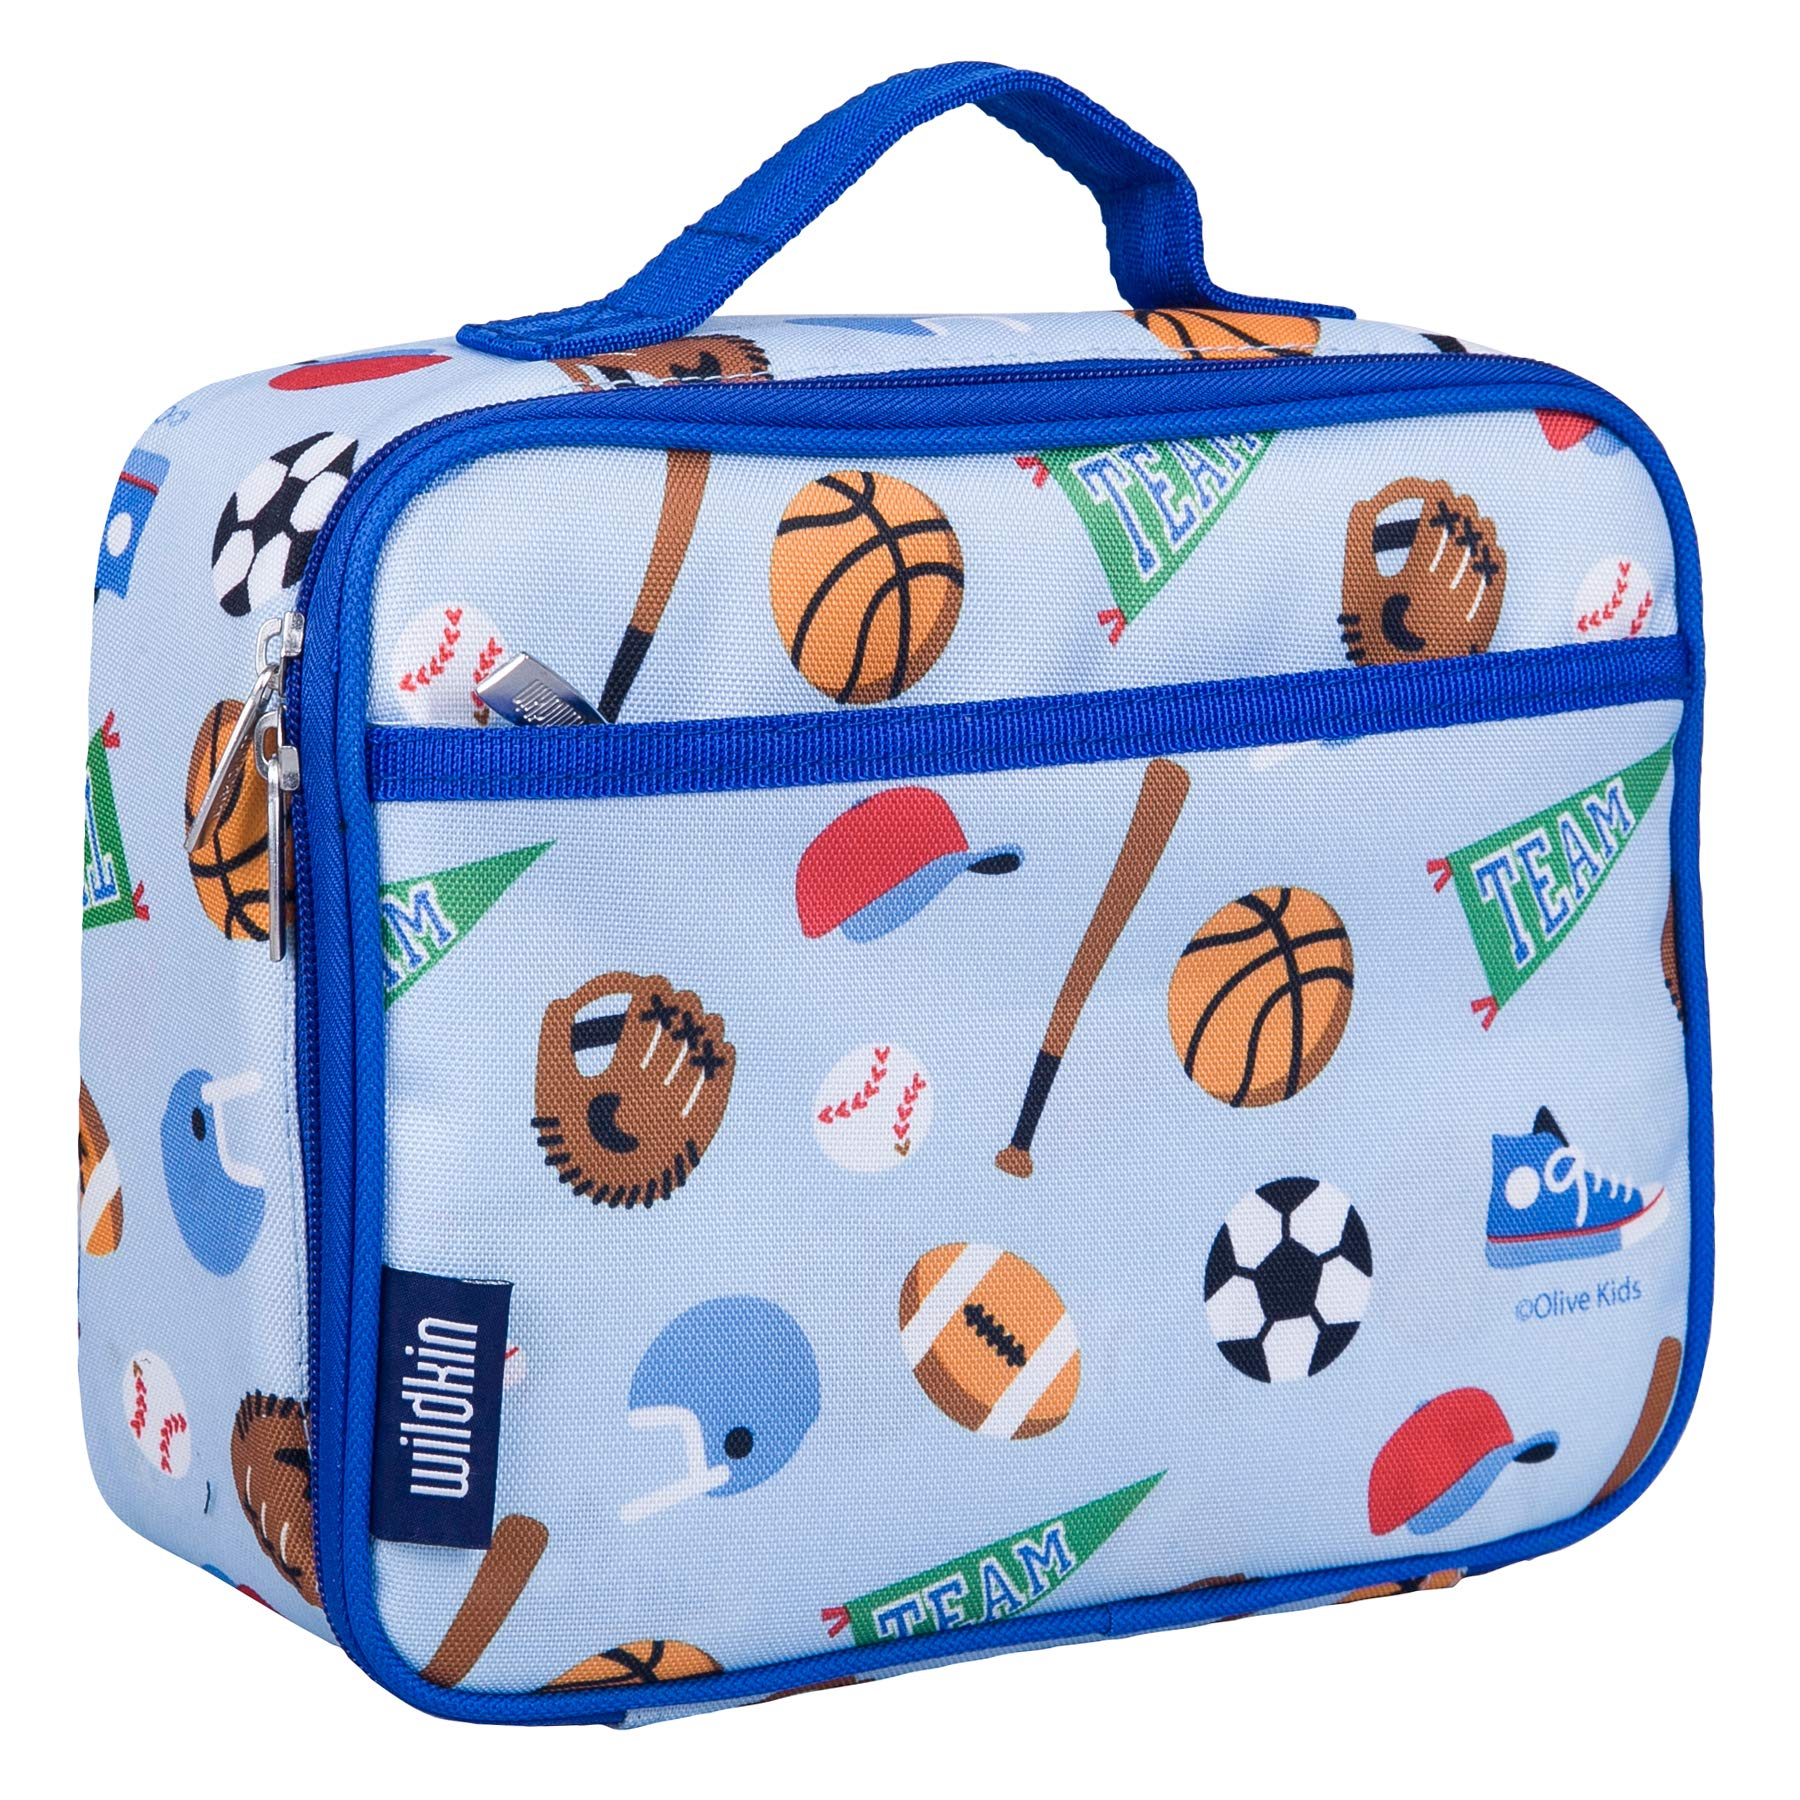 Wildkin Lunch Box, Insulated, Moisture Resistant, and Easy to Clean with Helpful Extras for Quick and Simple Organization, Ages 3+, Perfect for Kids or On-The-Go Parents, Olive Kids Design – Game On